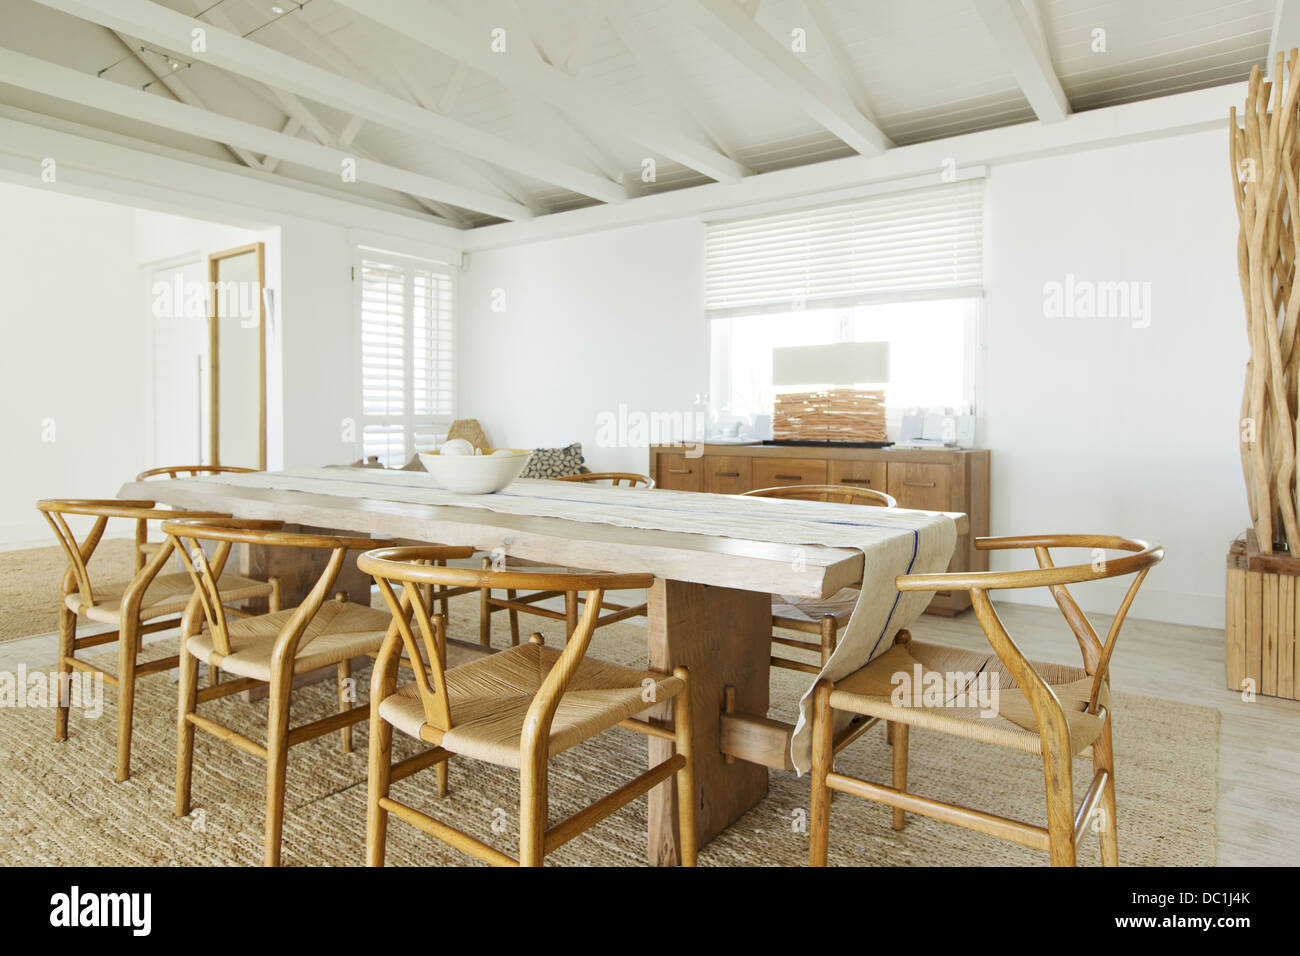 Wooden table in dining room - Stock Image